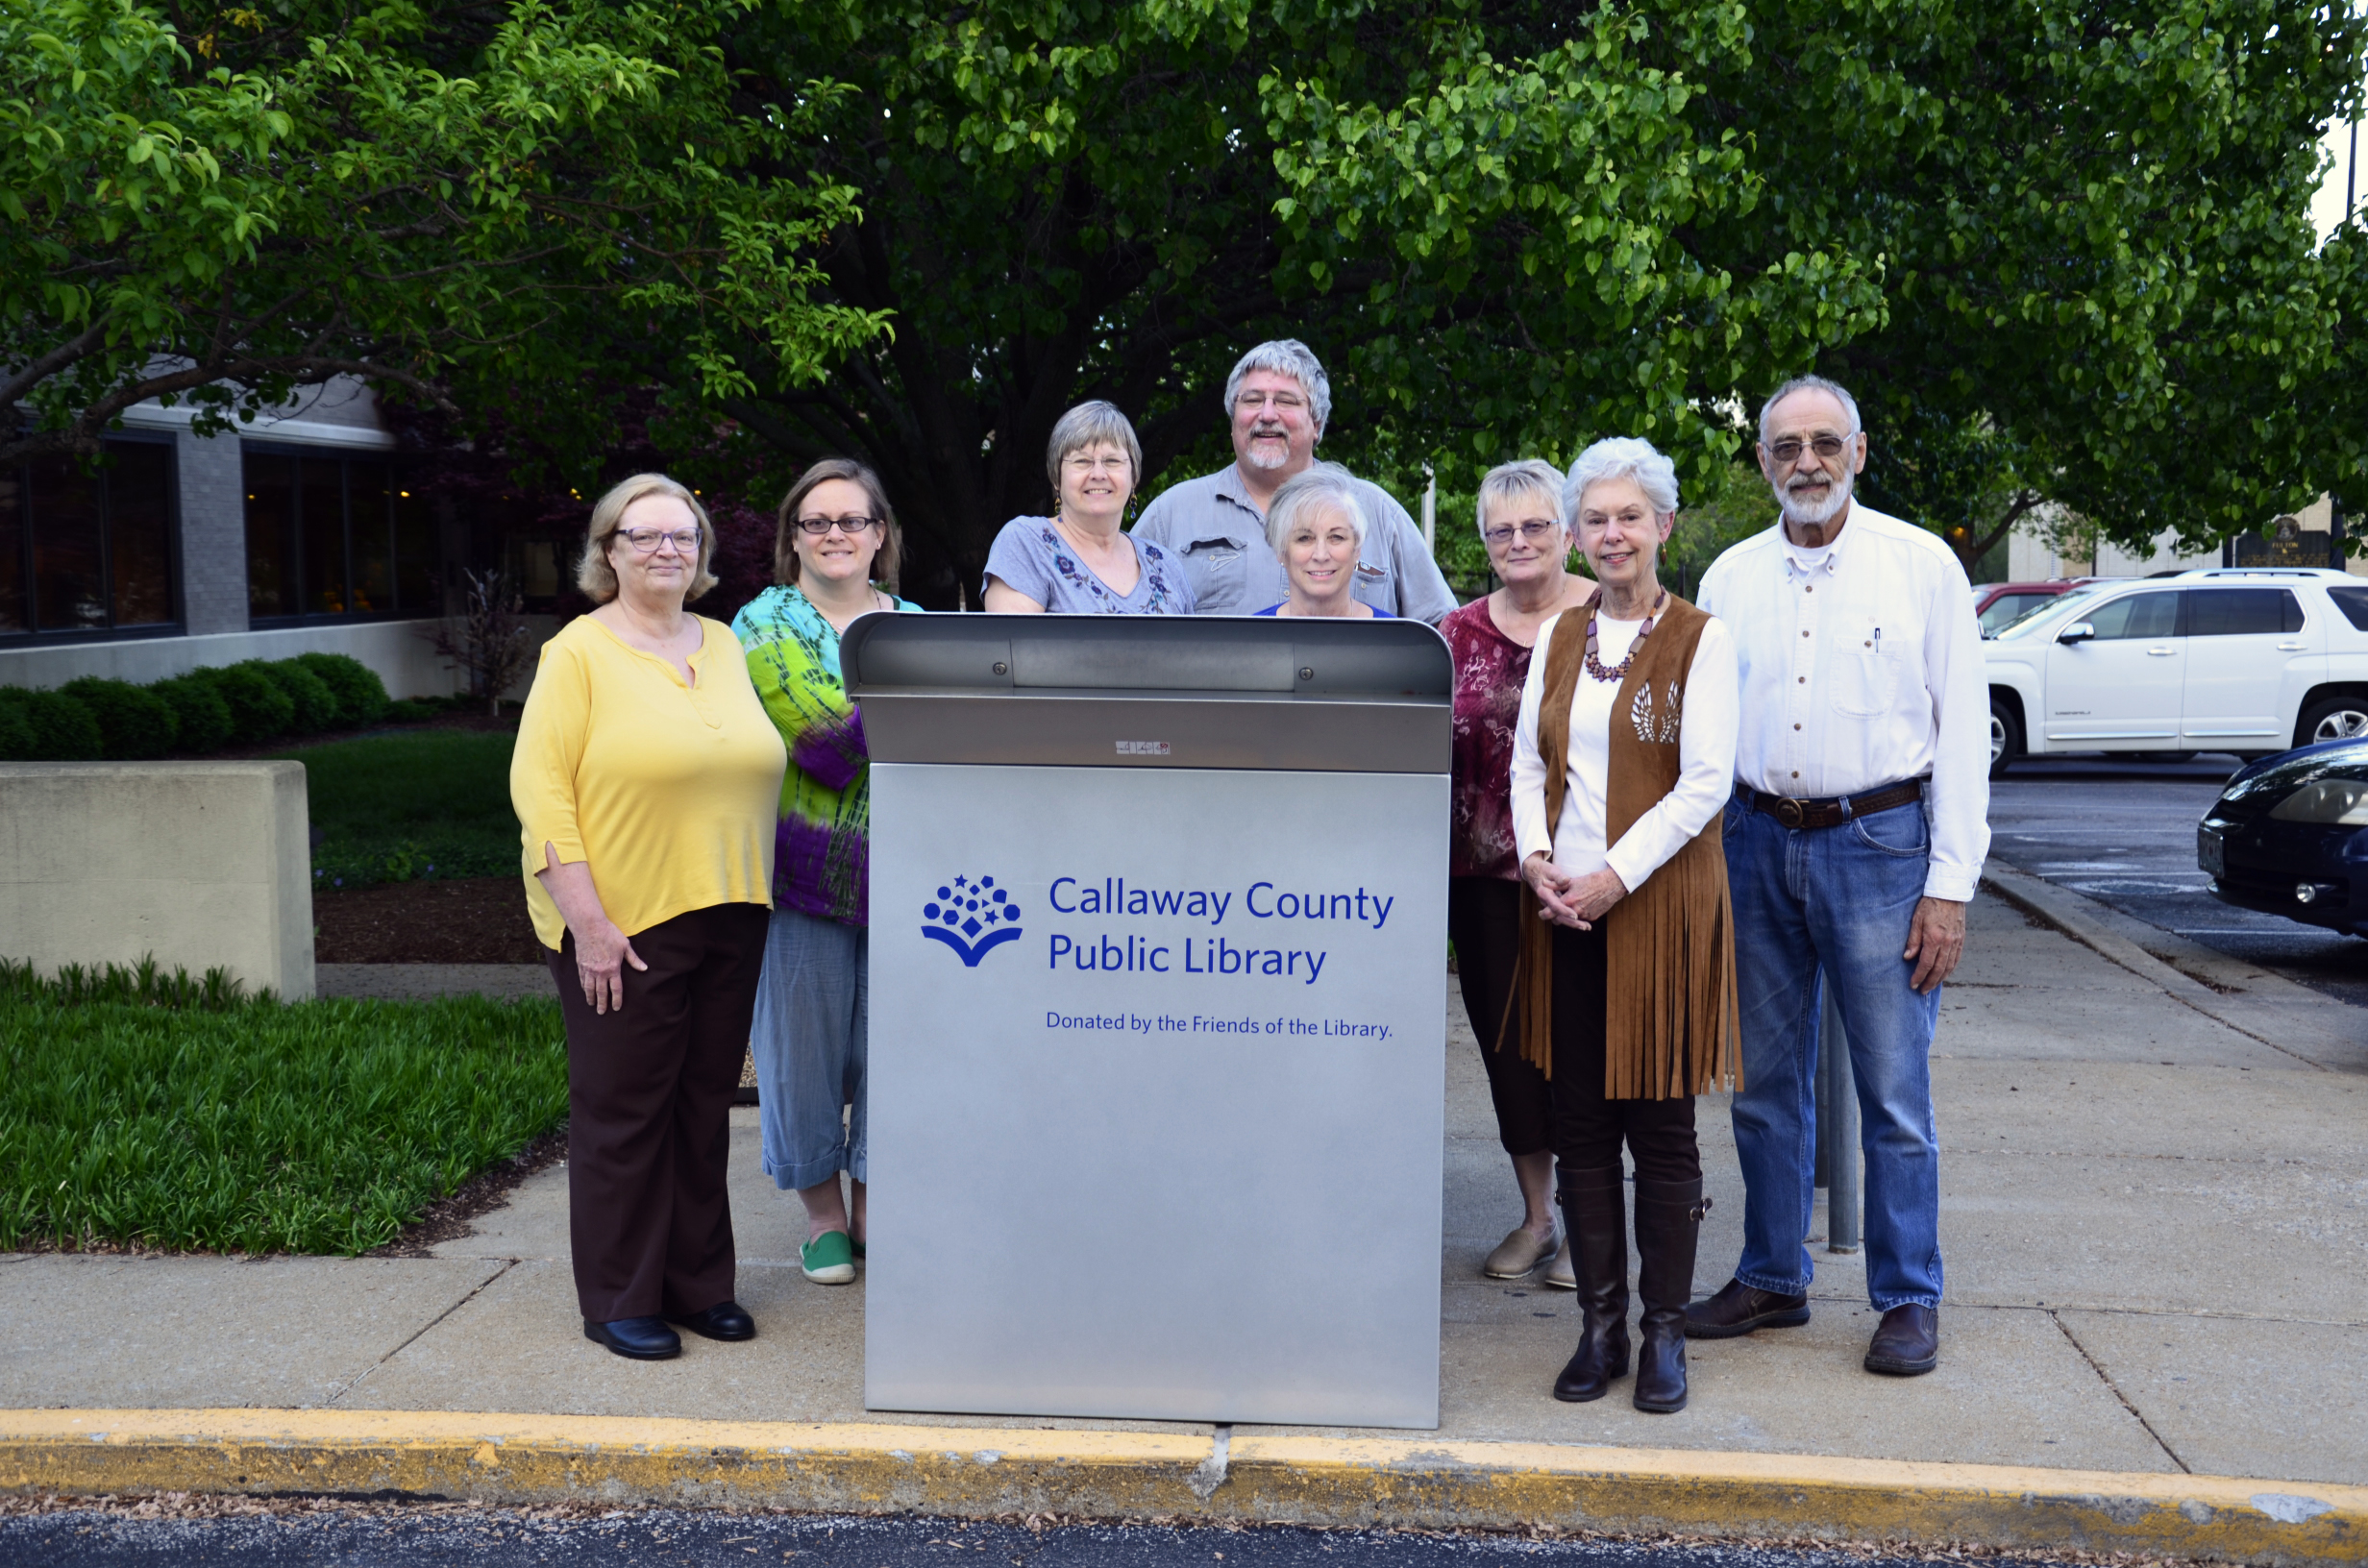 Friends of the Callaway County Public Library